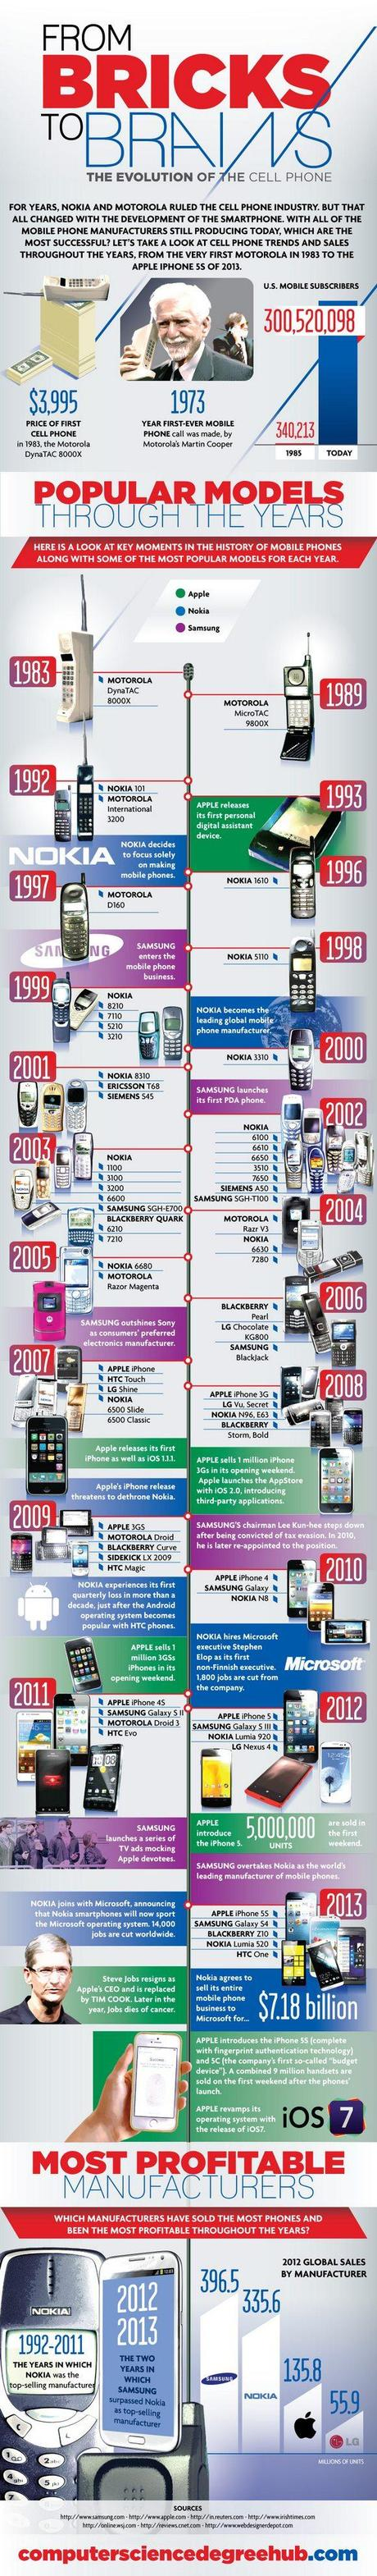 cell phone evolution essay Cell phones have become an extremely popular gadget used for daily living and, in most cases, have replaced landlines when it comes to communication.